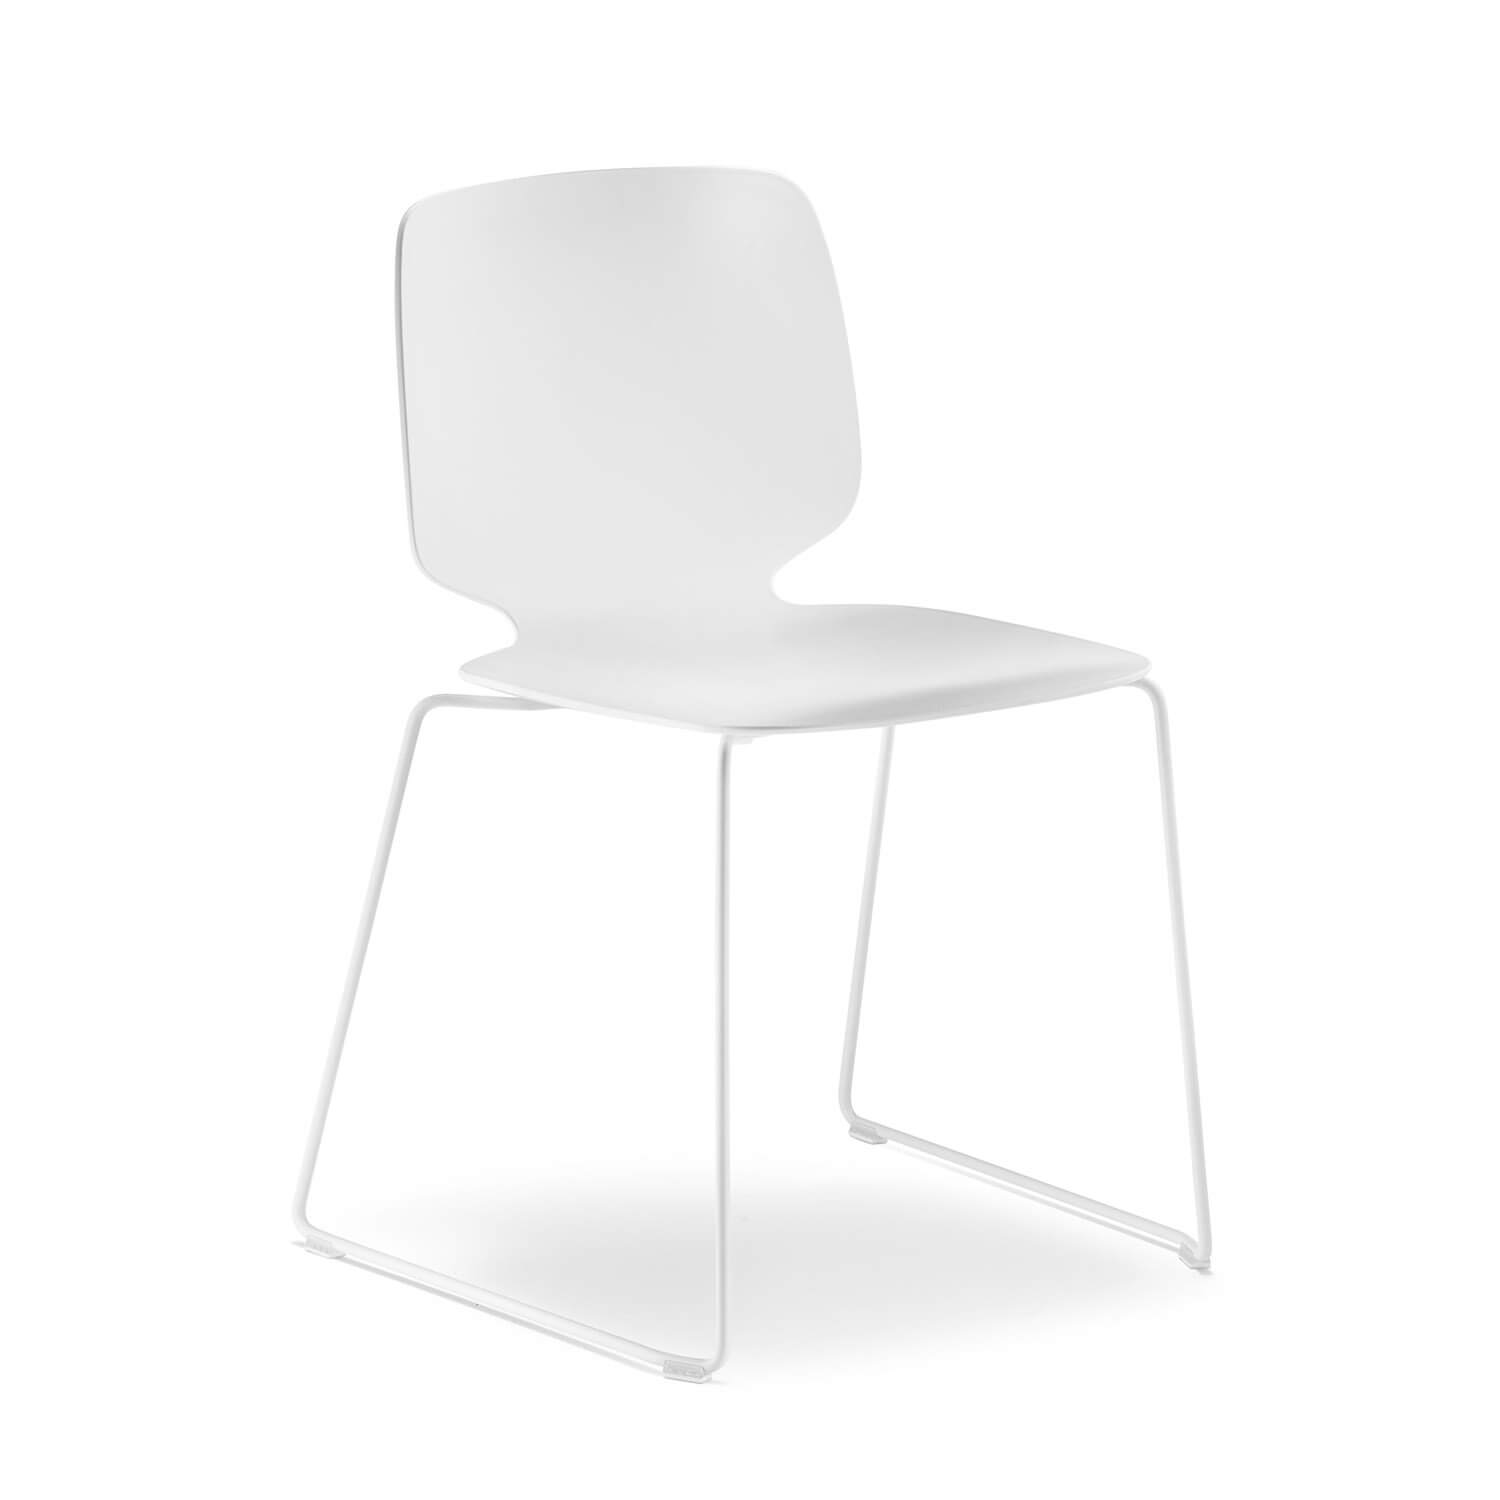 pedrali-babila-chair-2740